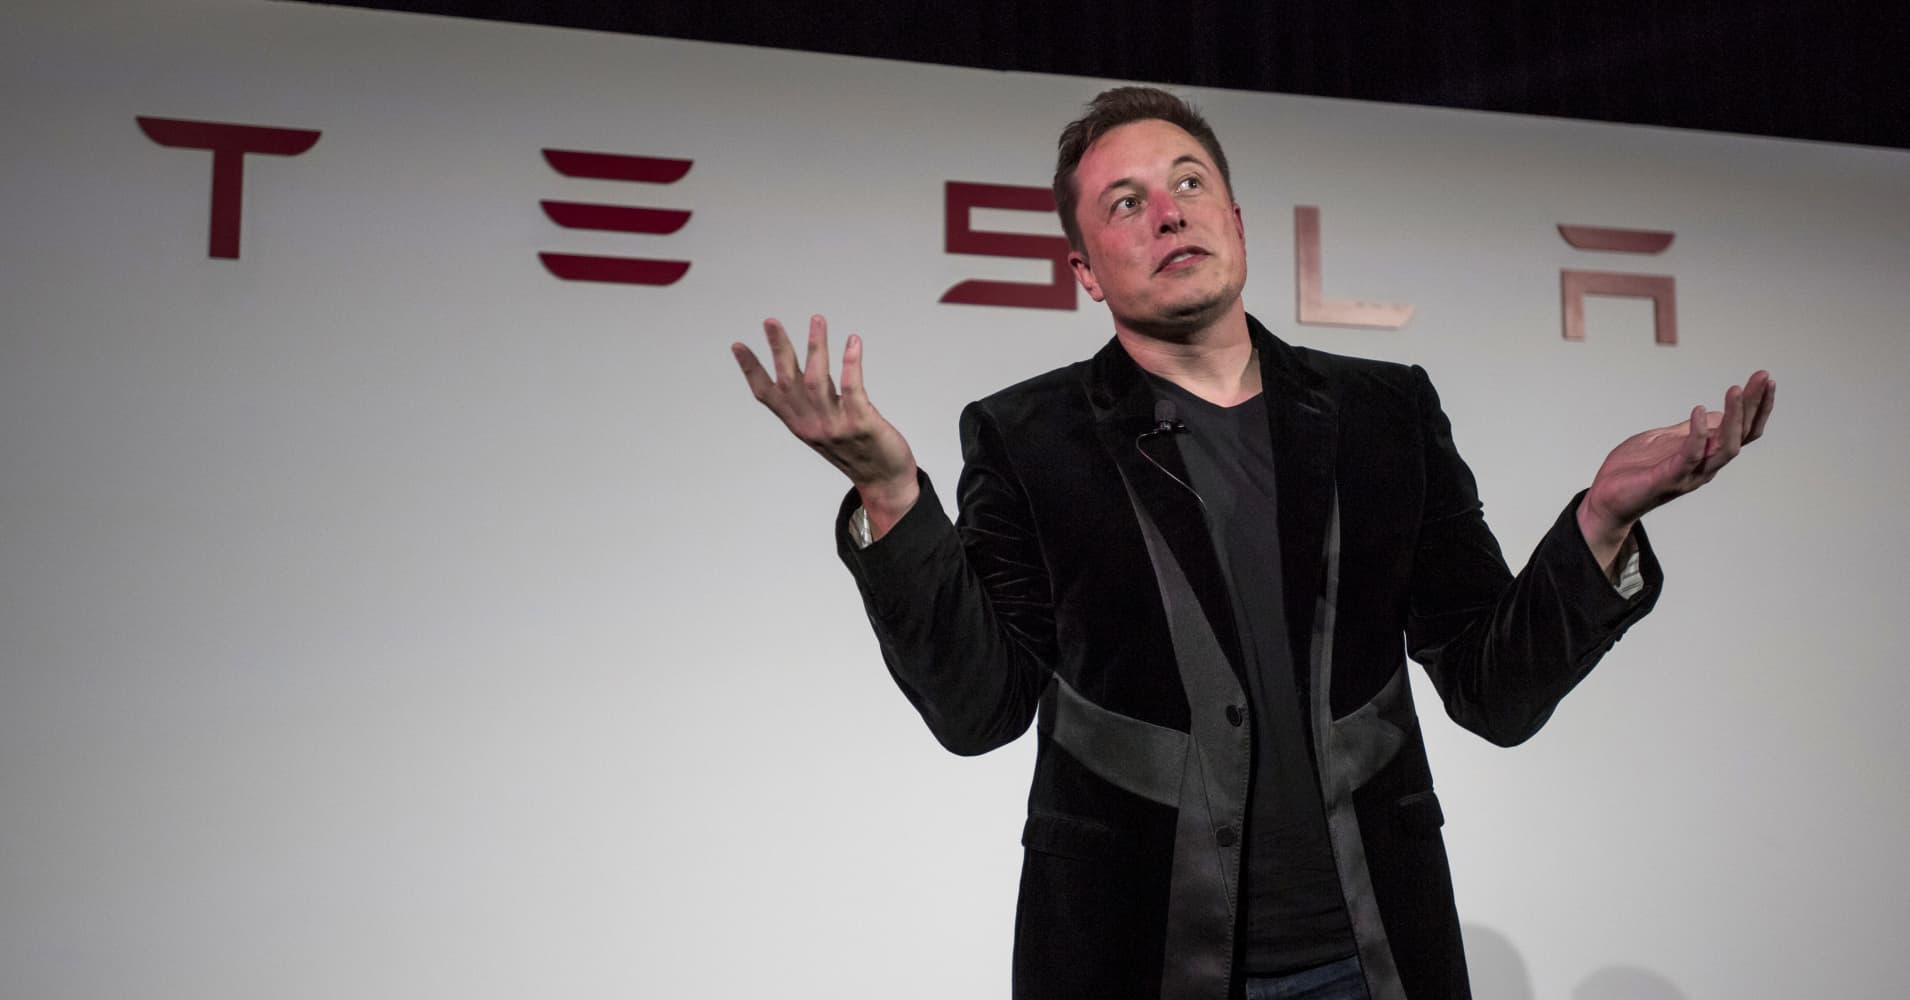 Tesla's reward for hitting its targets could be a stock surge past $500, says analyst